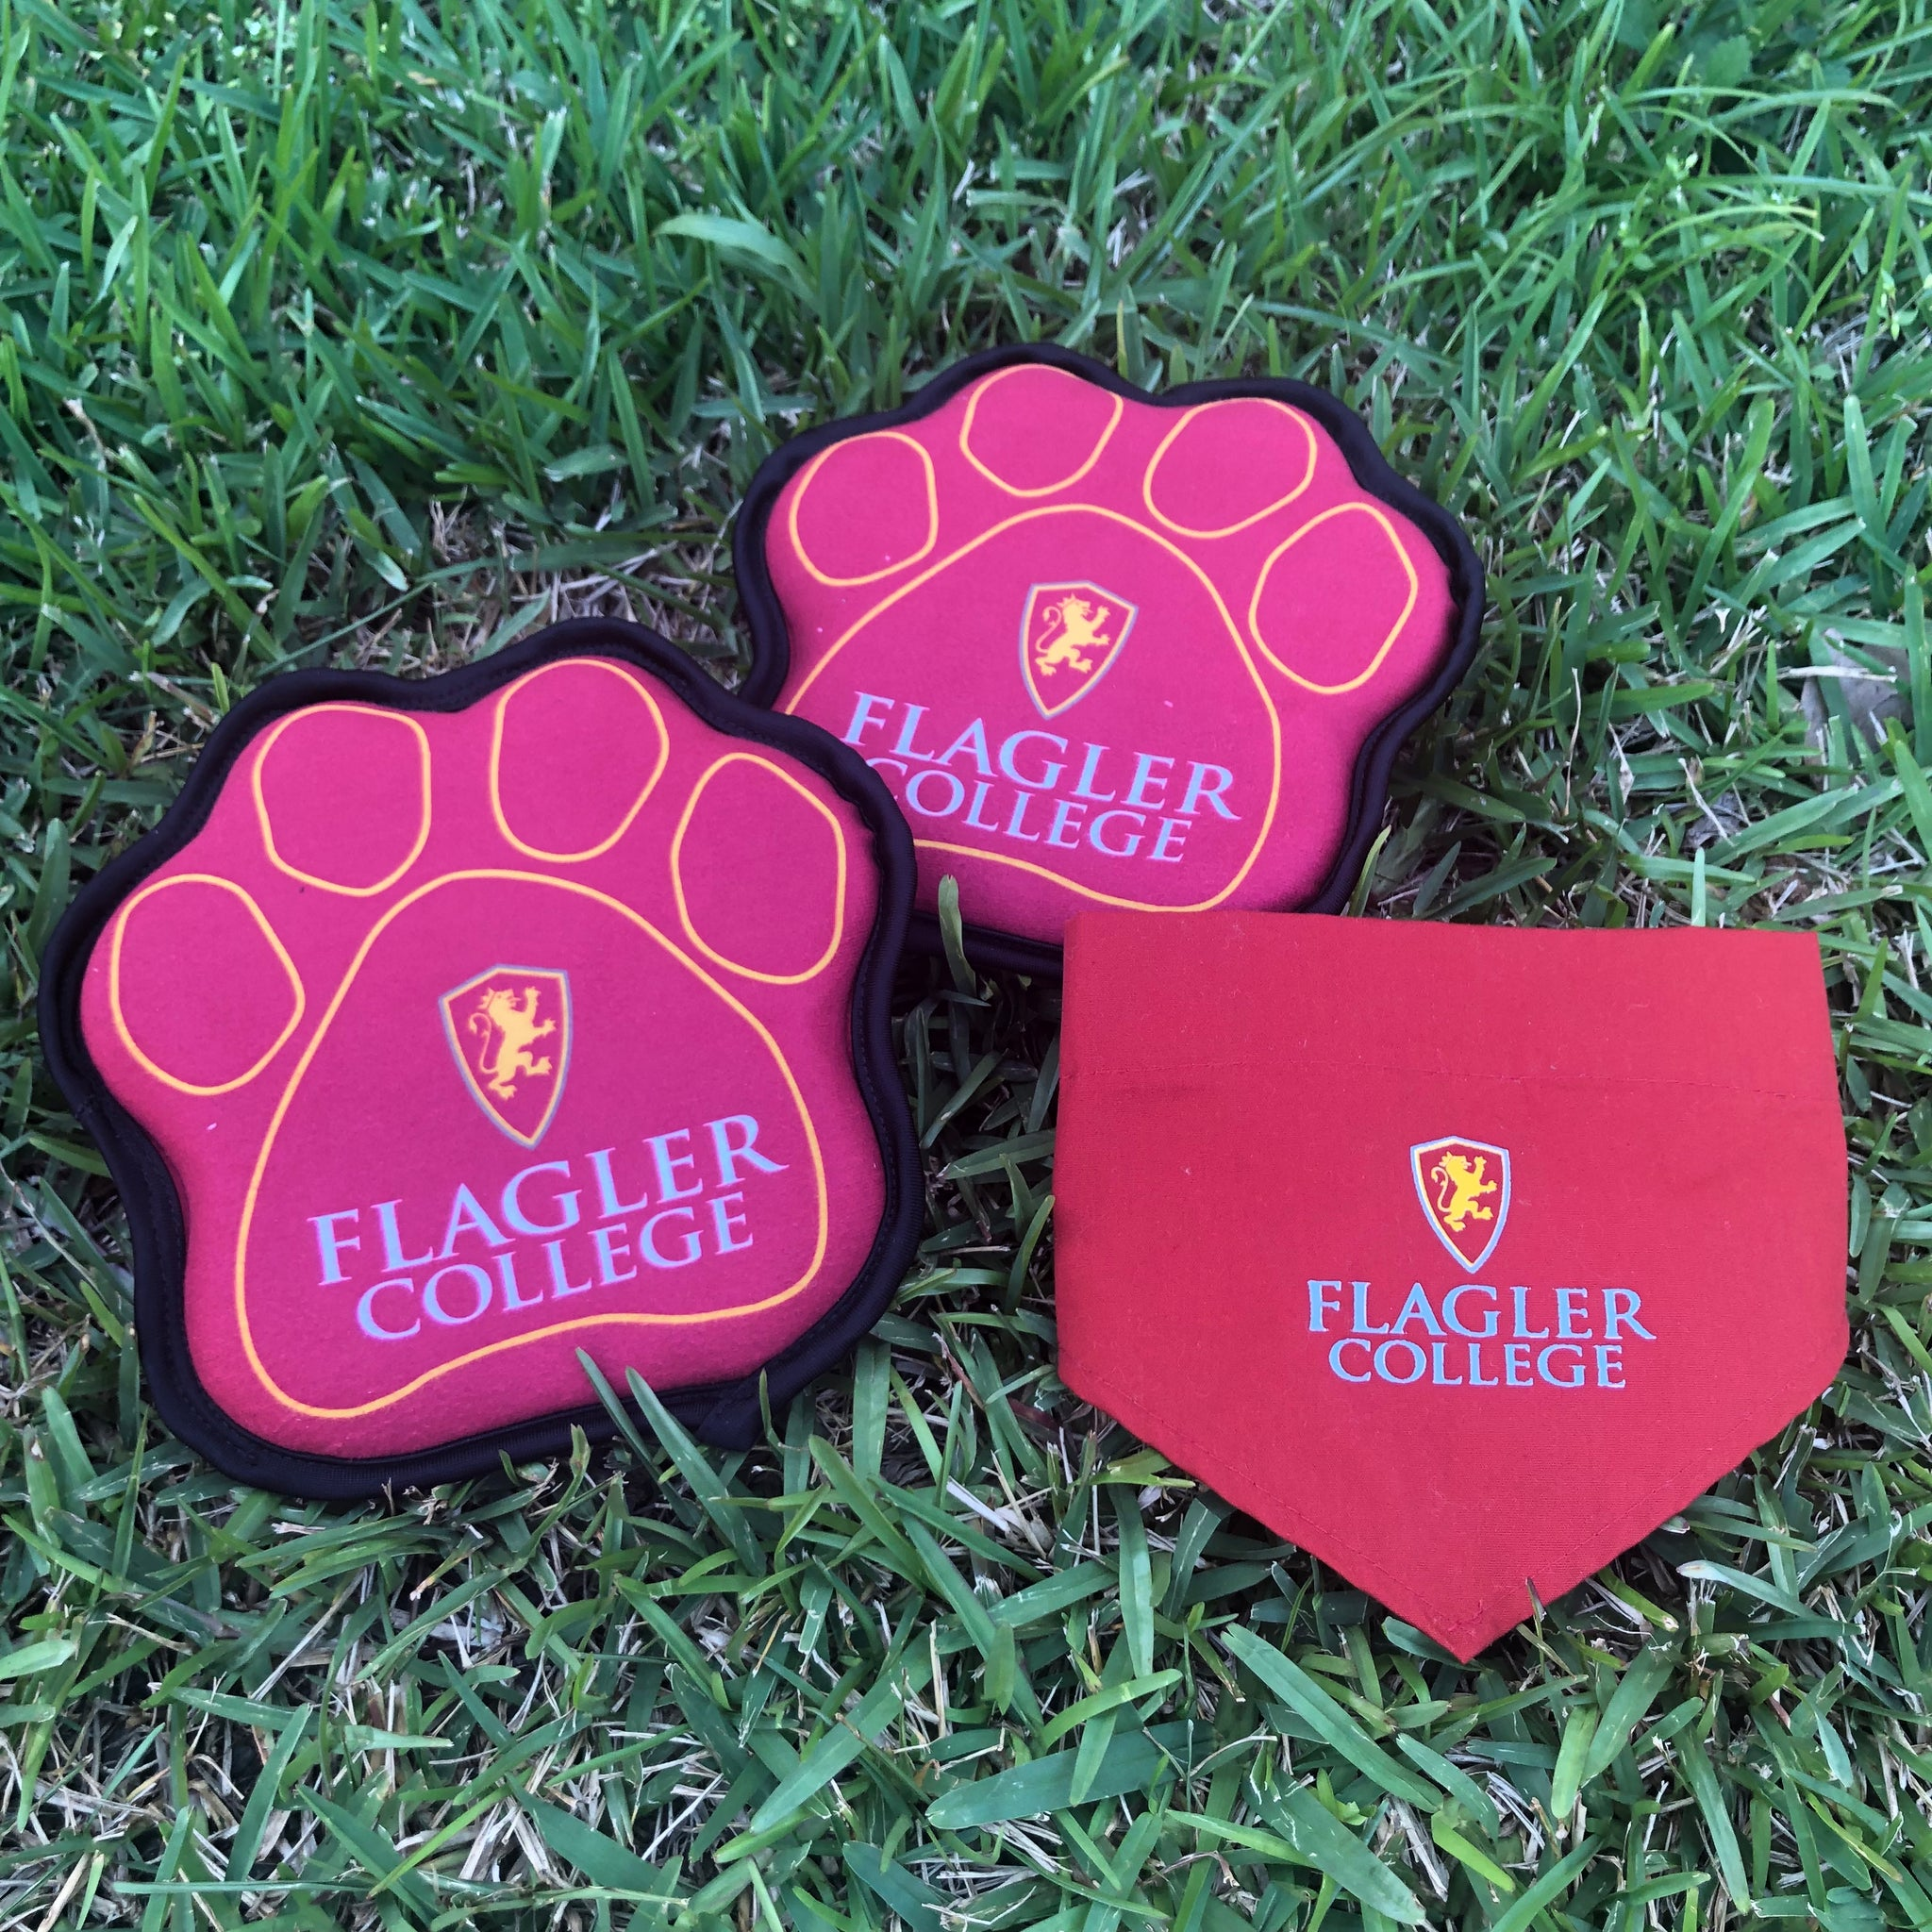 red and gold dog paw toy with Flagler college printed in white and shield printed in gold and red